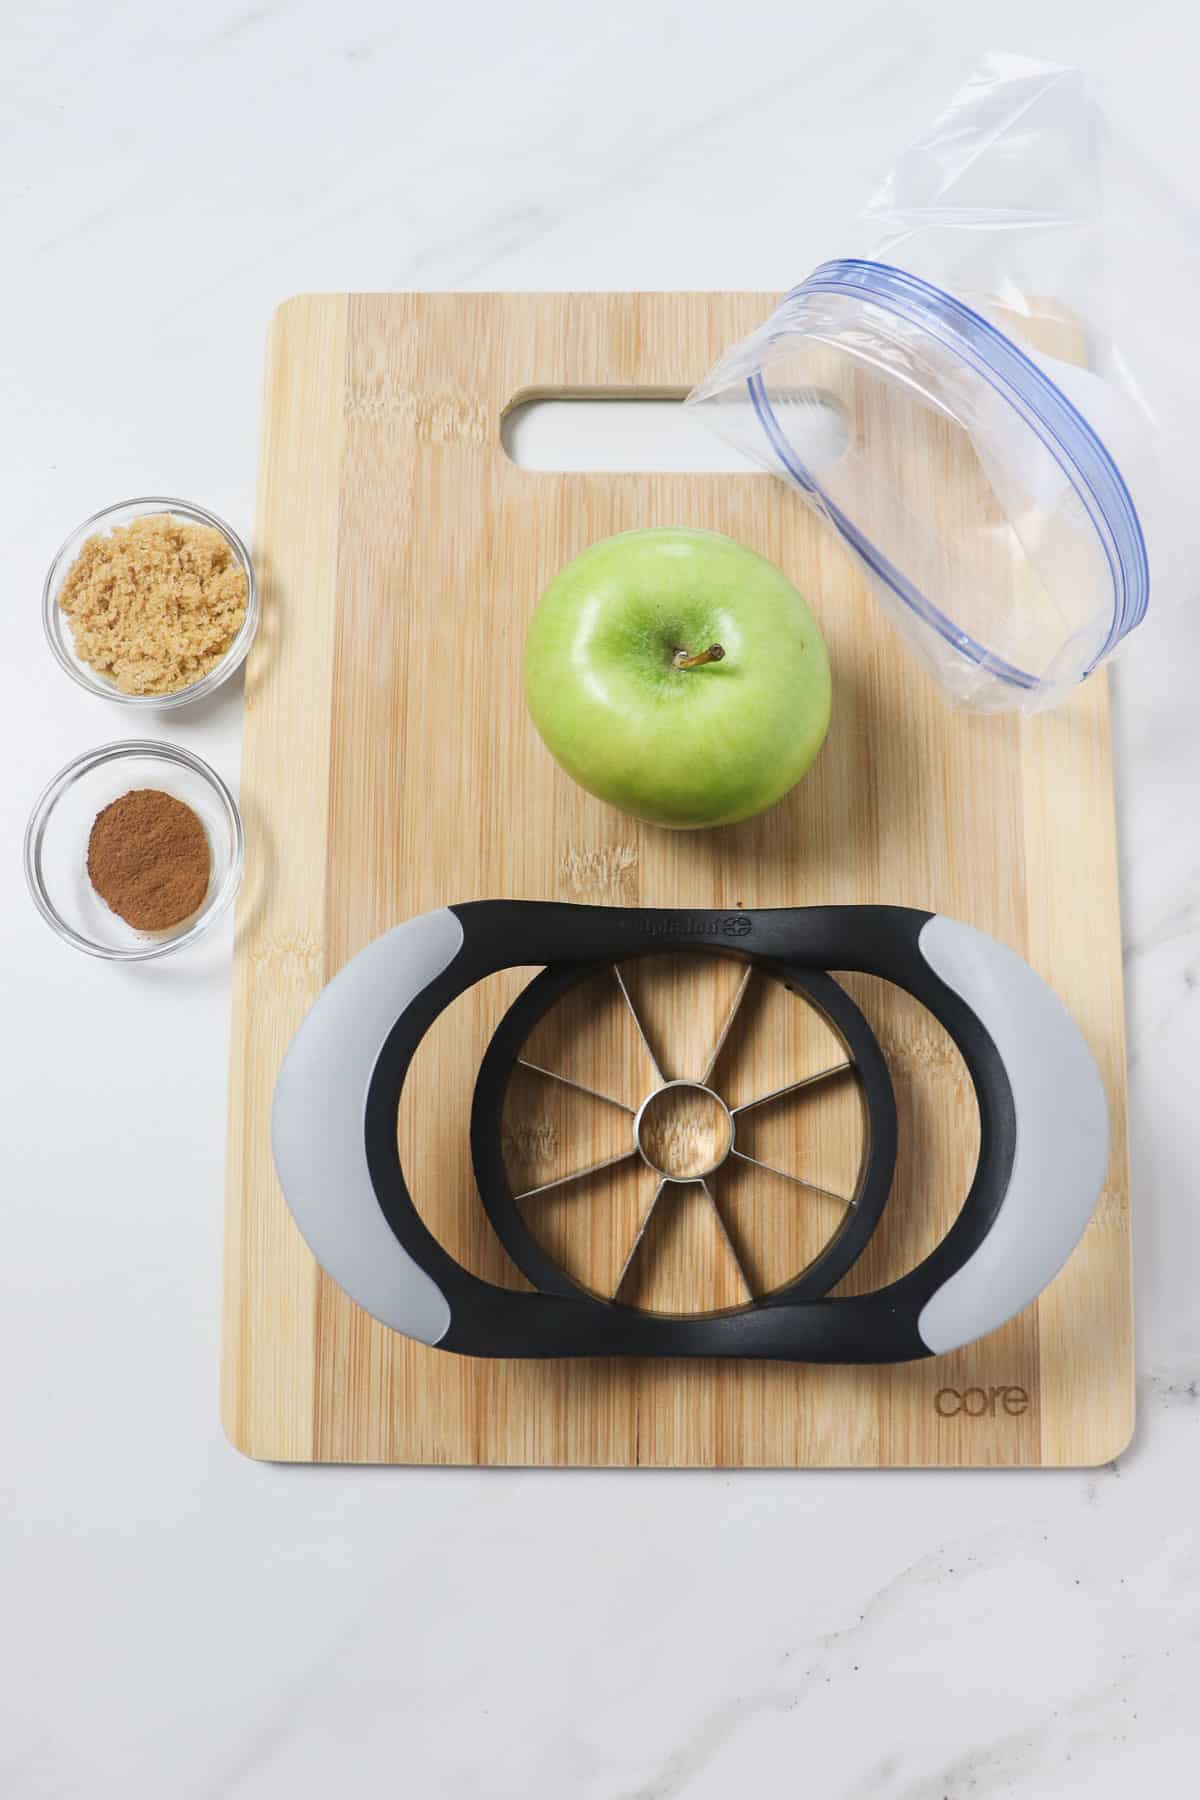 ingredients and tools for making cinnamon sugar apple slices